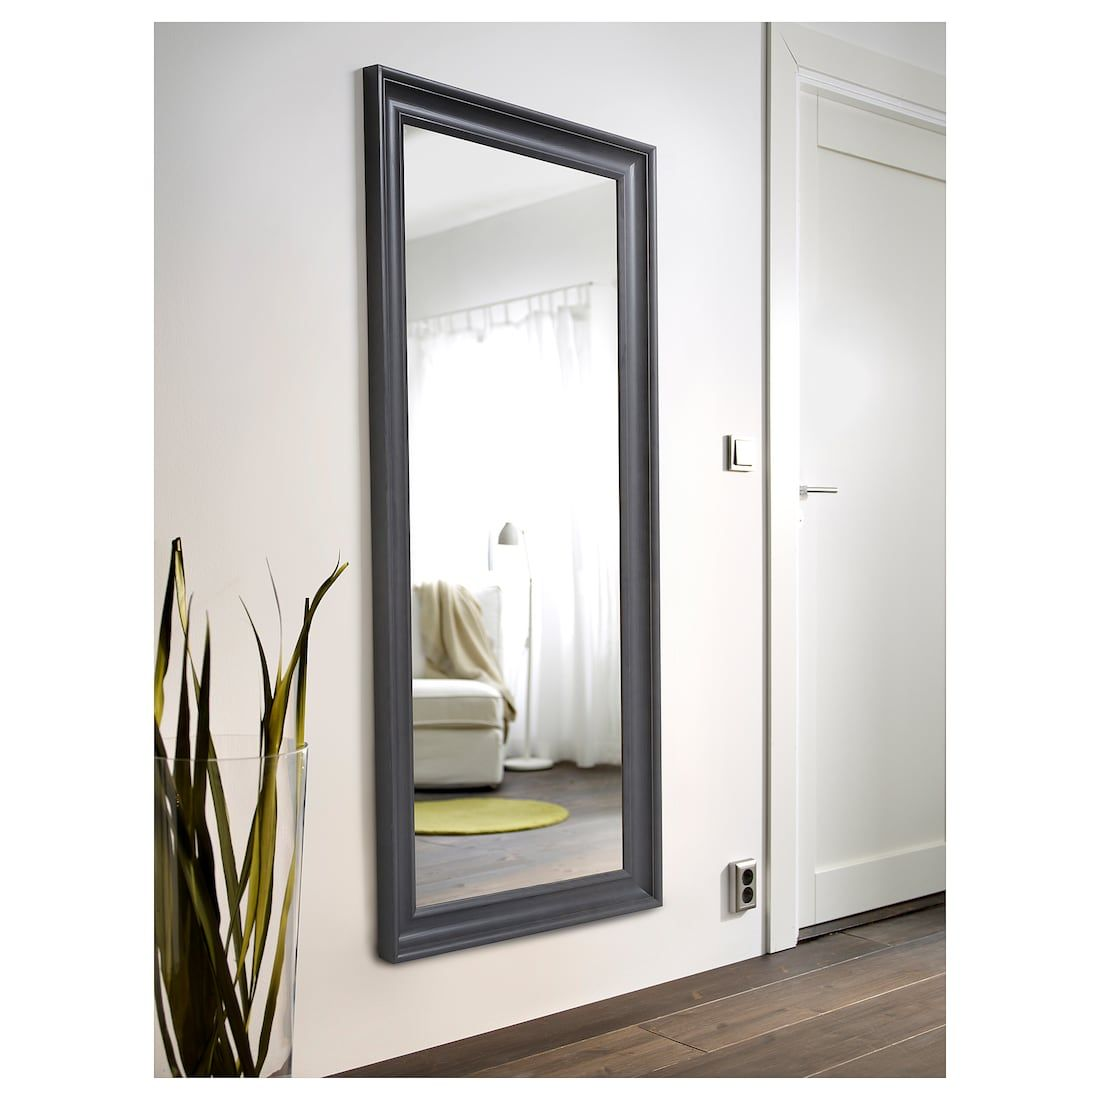 Hemnes Mirror Gray Stained Width 29 1 8 Height 65 Ikea Hemnes Mirror Ikea Full Length Mirror Hemnes